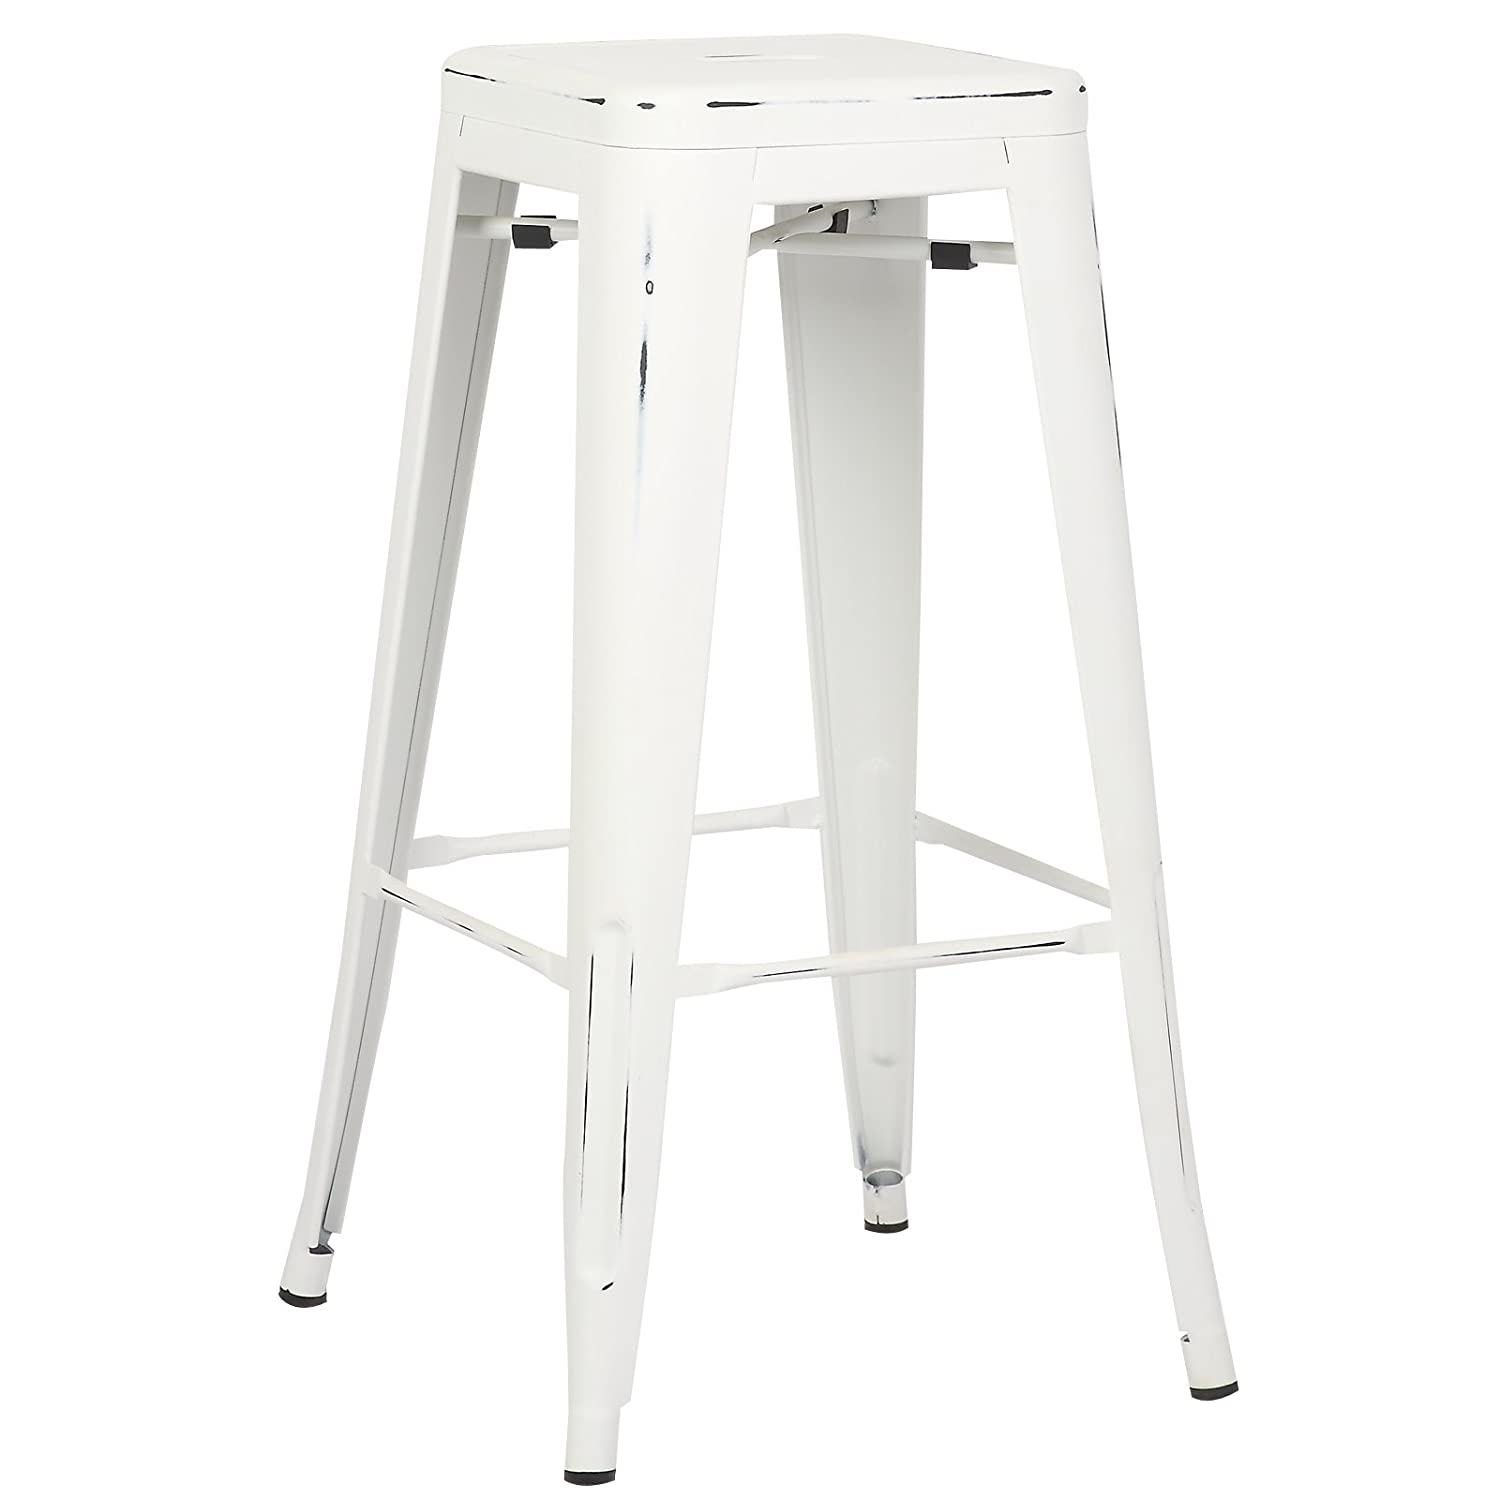 Peachy Poly And Bark Trattoria 30 Inch Counter Height Industrial Metal Bar Stool Stackable Distressed White Creativecarmelina Interior Chair Design Creativecarmelinacom